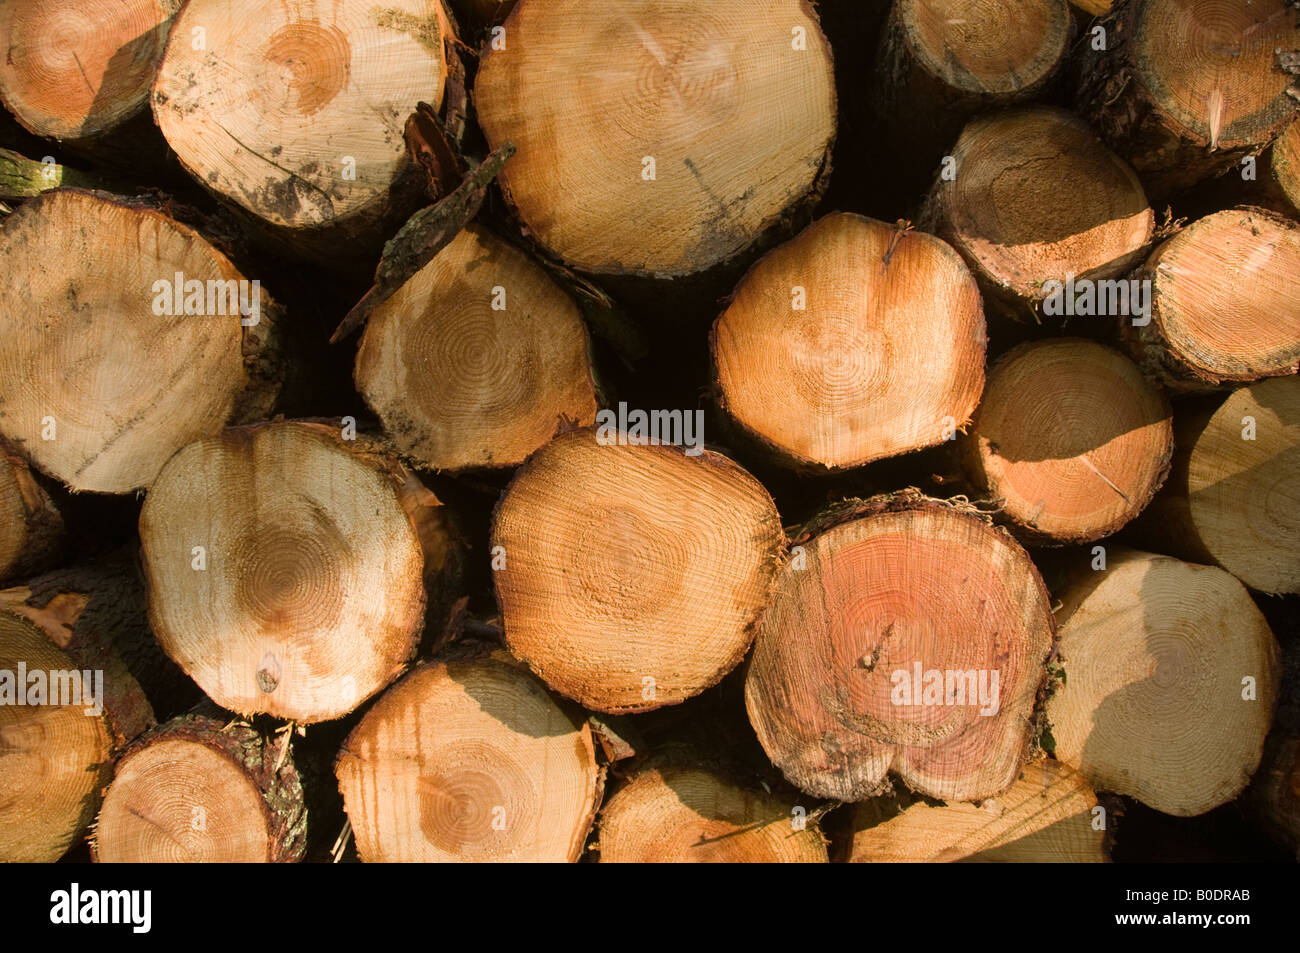 harvested soft wood cut into lengths and stacked in piles ready for collection and delivery to sawmill - Stock Image